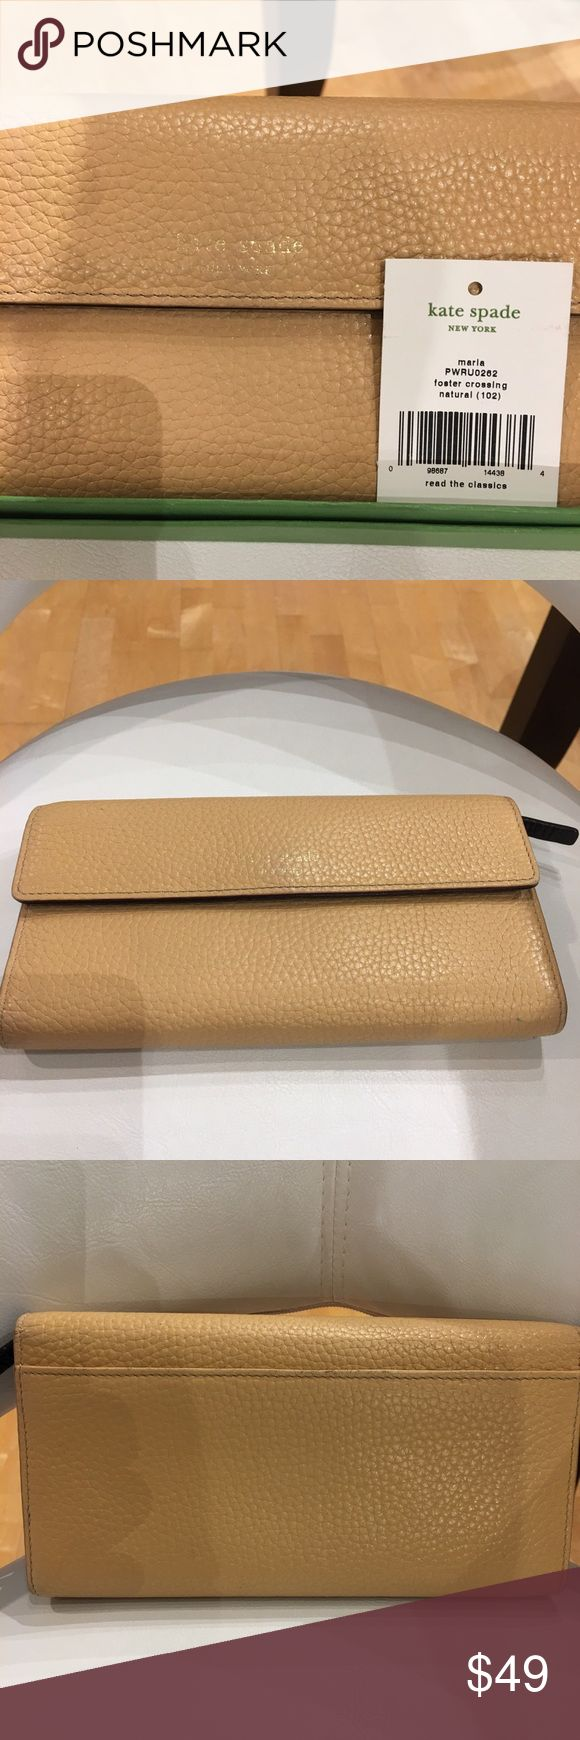 💋kate spade New York Tri-fold Kate Spade embossed leather wallet. Exterior beige leather (natural) interior brown leather. 6 long storage slots inside, zip coin slot & check holder. Box included. Overall condition of wallet great. Some wear of leather at edges & minor scratches inside.?Kate spade little hard to read front side. Box shows wear at edges & large spot on front. Style: Maria PWRU0262 foster crossing natural (102). kate spade Bags Wallets